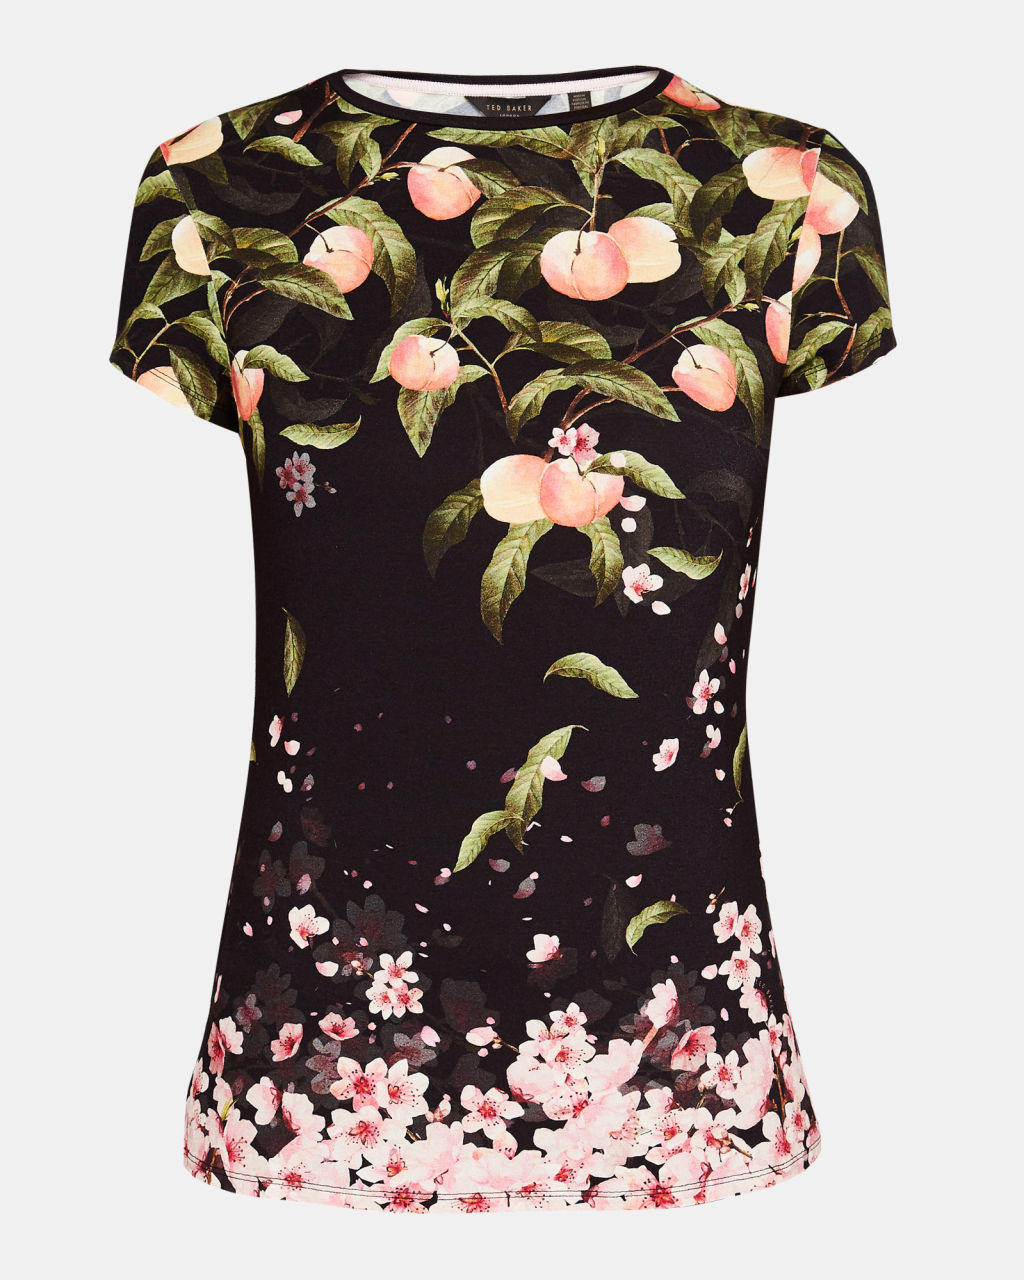 TED BAKERテッドベイカー☆DELILEE Peach Blossom Tシャツ